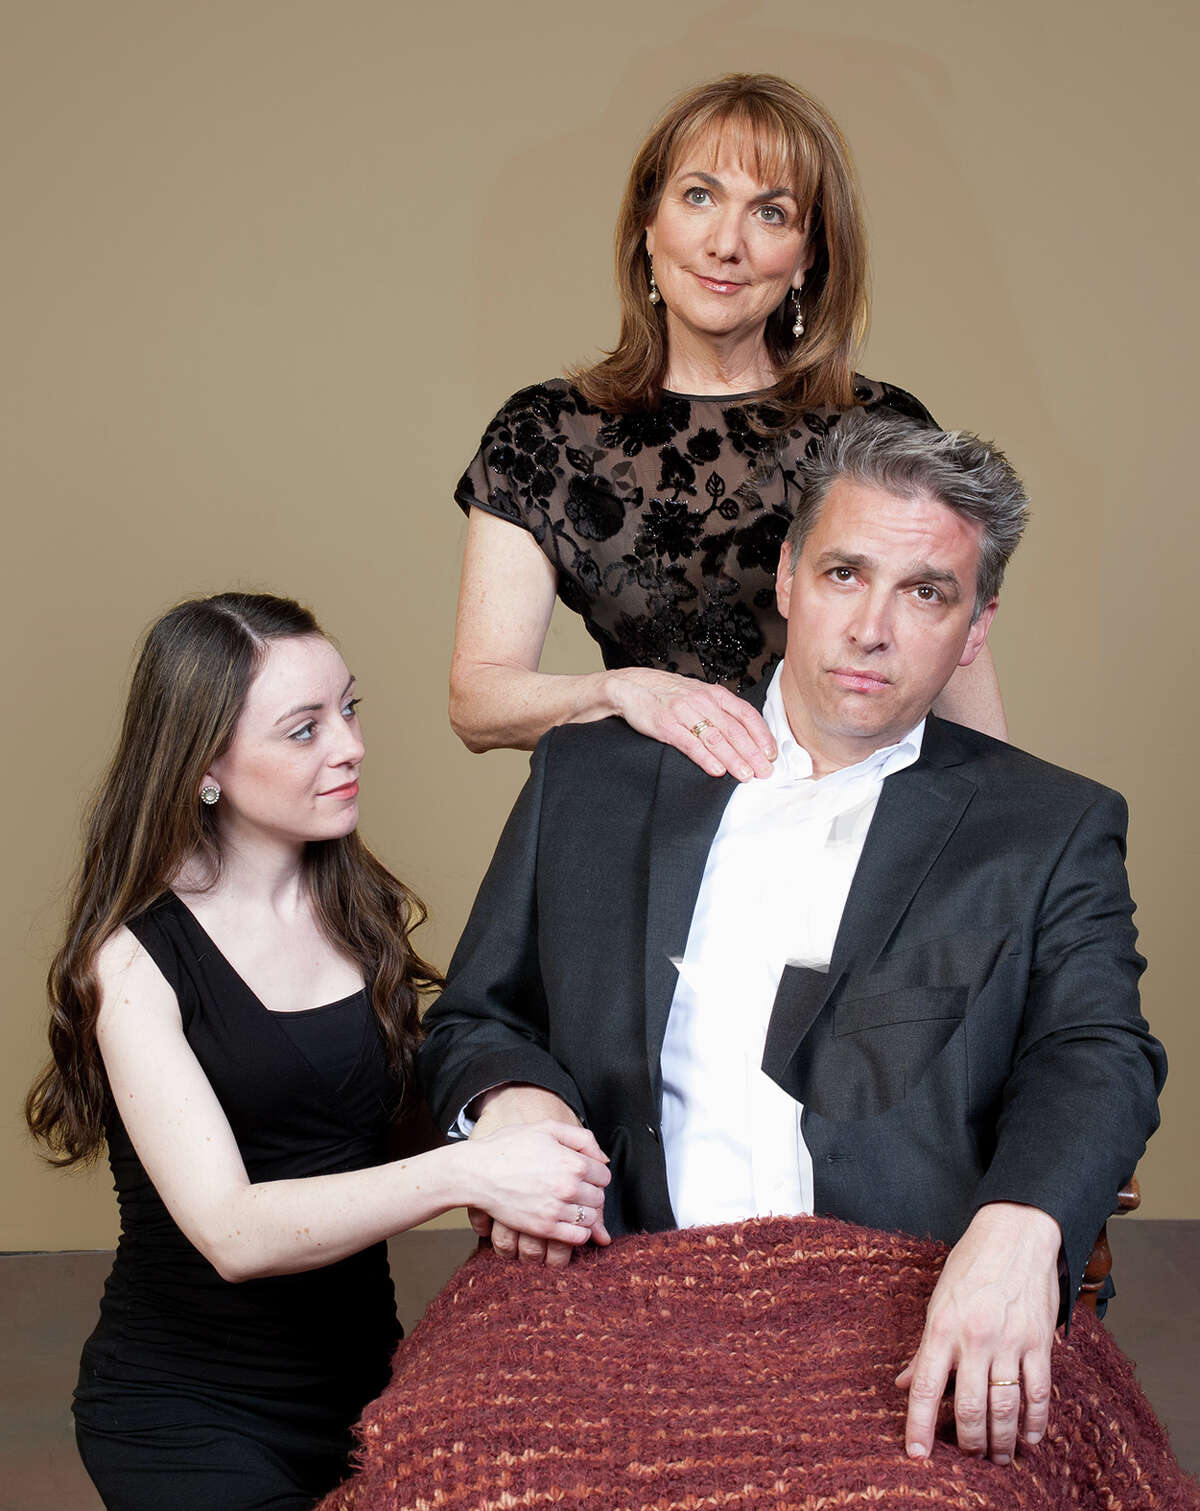 In addition to a busy law career and family life, Patrick McKenna also often performed for many years with Capital Region community theaters, including this 2013 Theater Voices production of